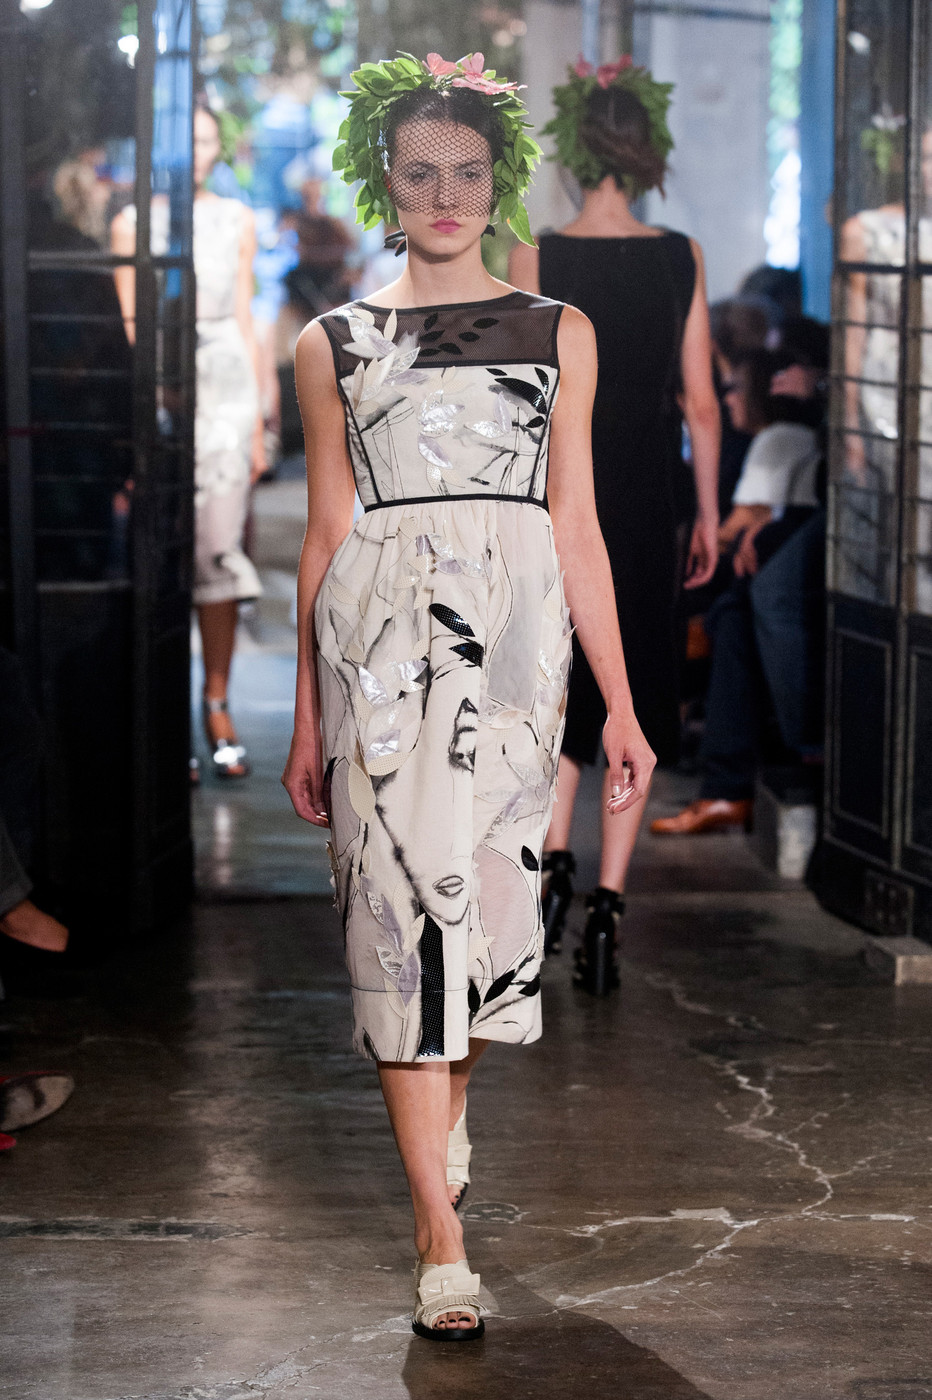 Antonio marras at milan fashion week spring 2014 stylebistro Fashion style via antonio panizzi